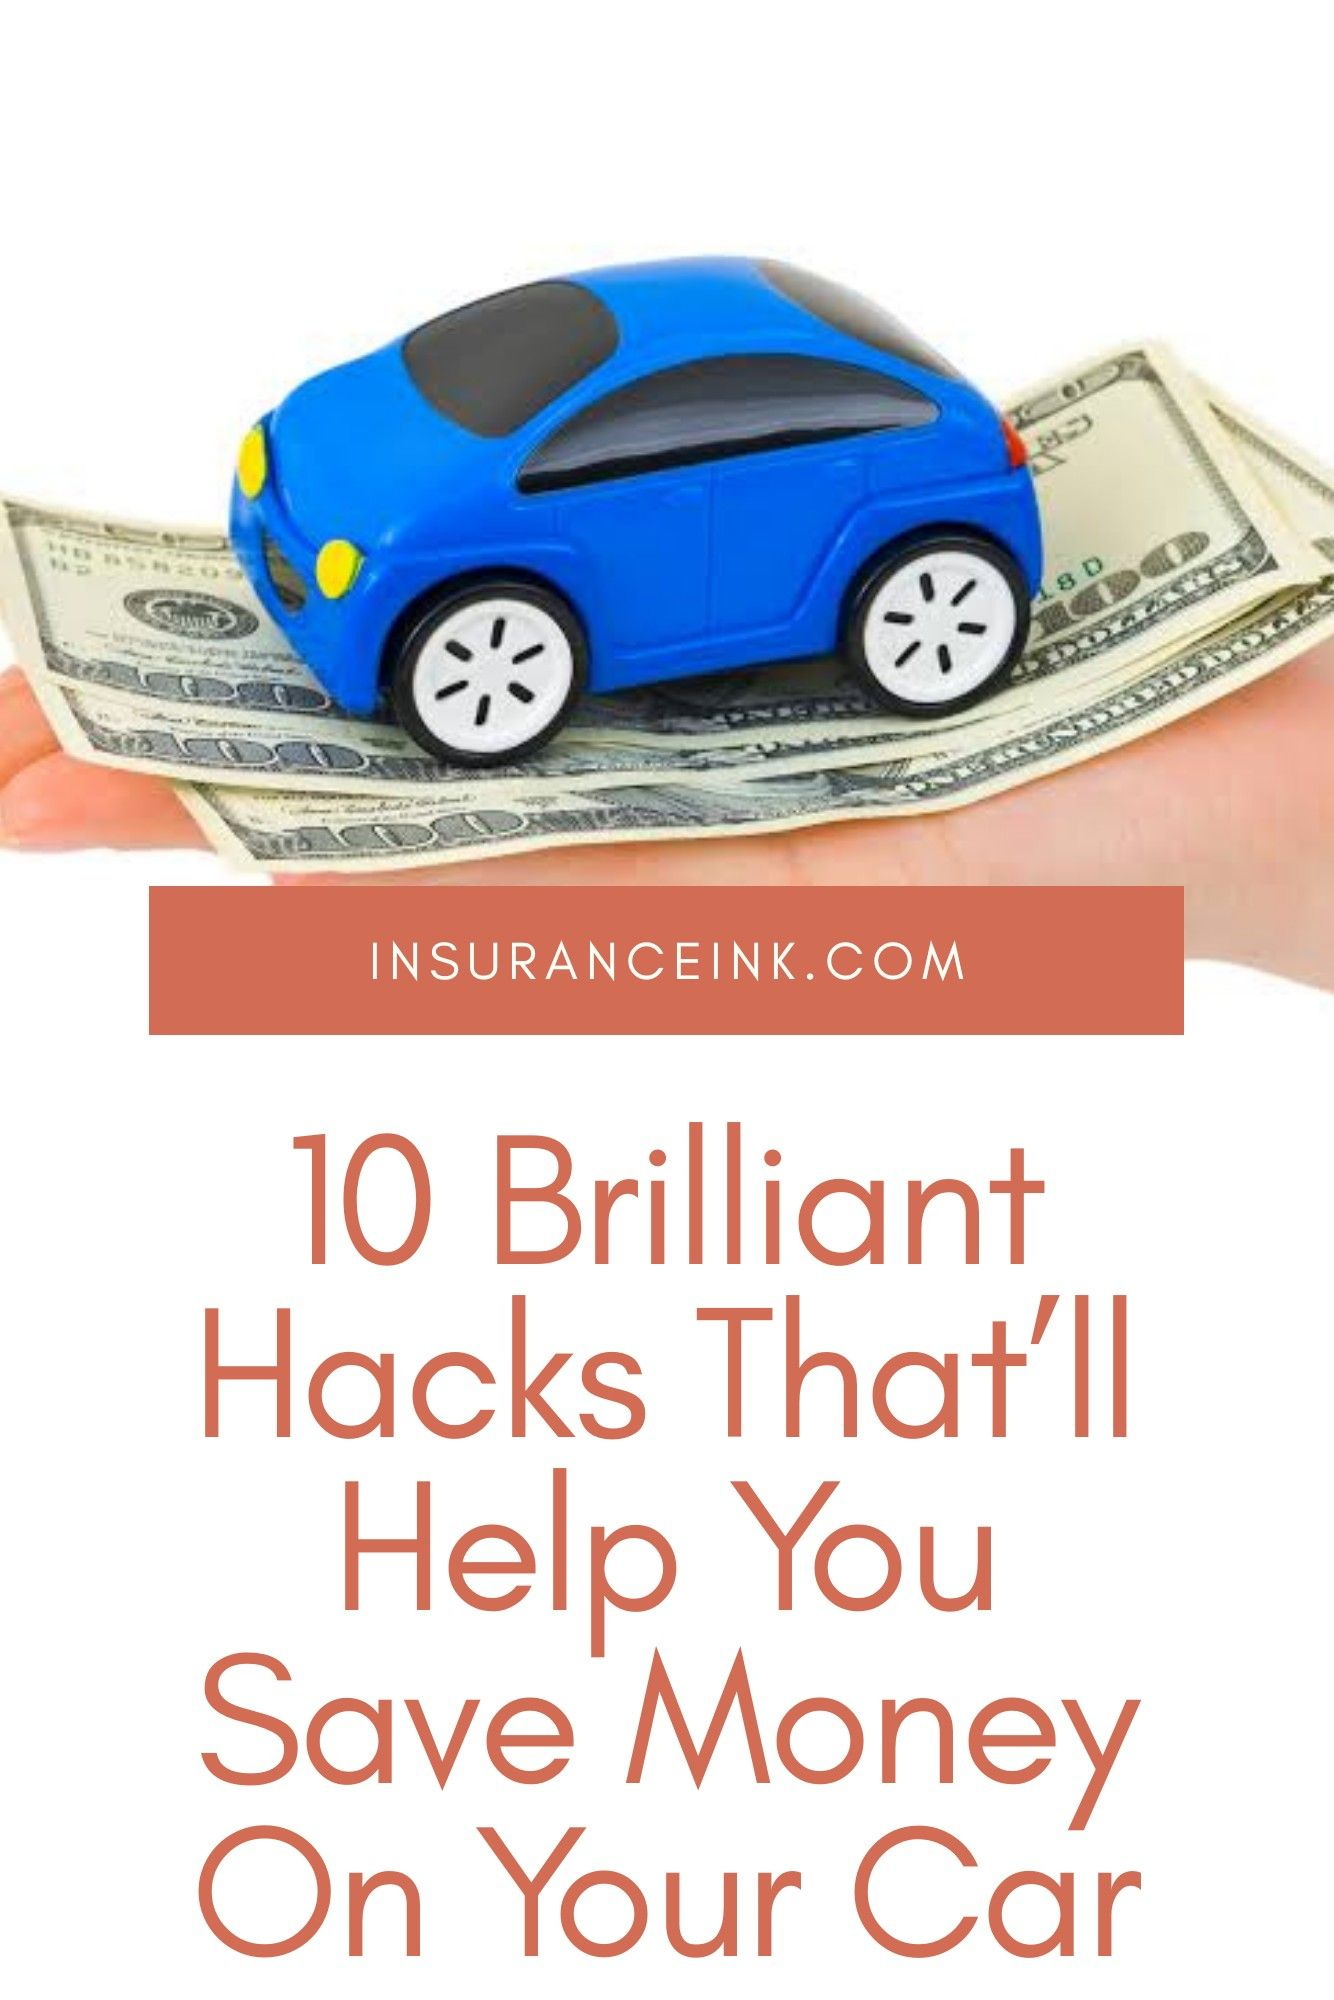 How to Get Cheap Car Insurance Near Me? (With images